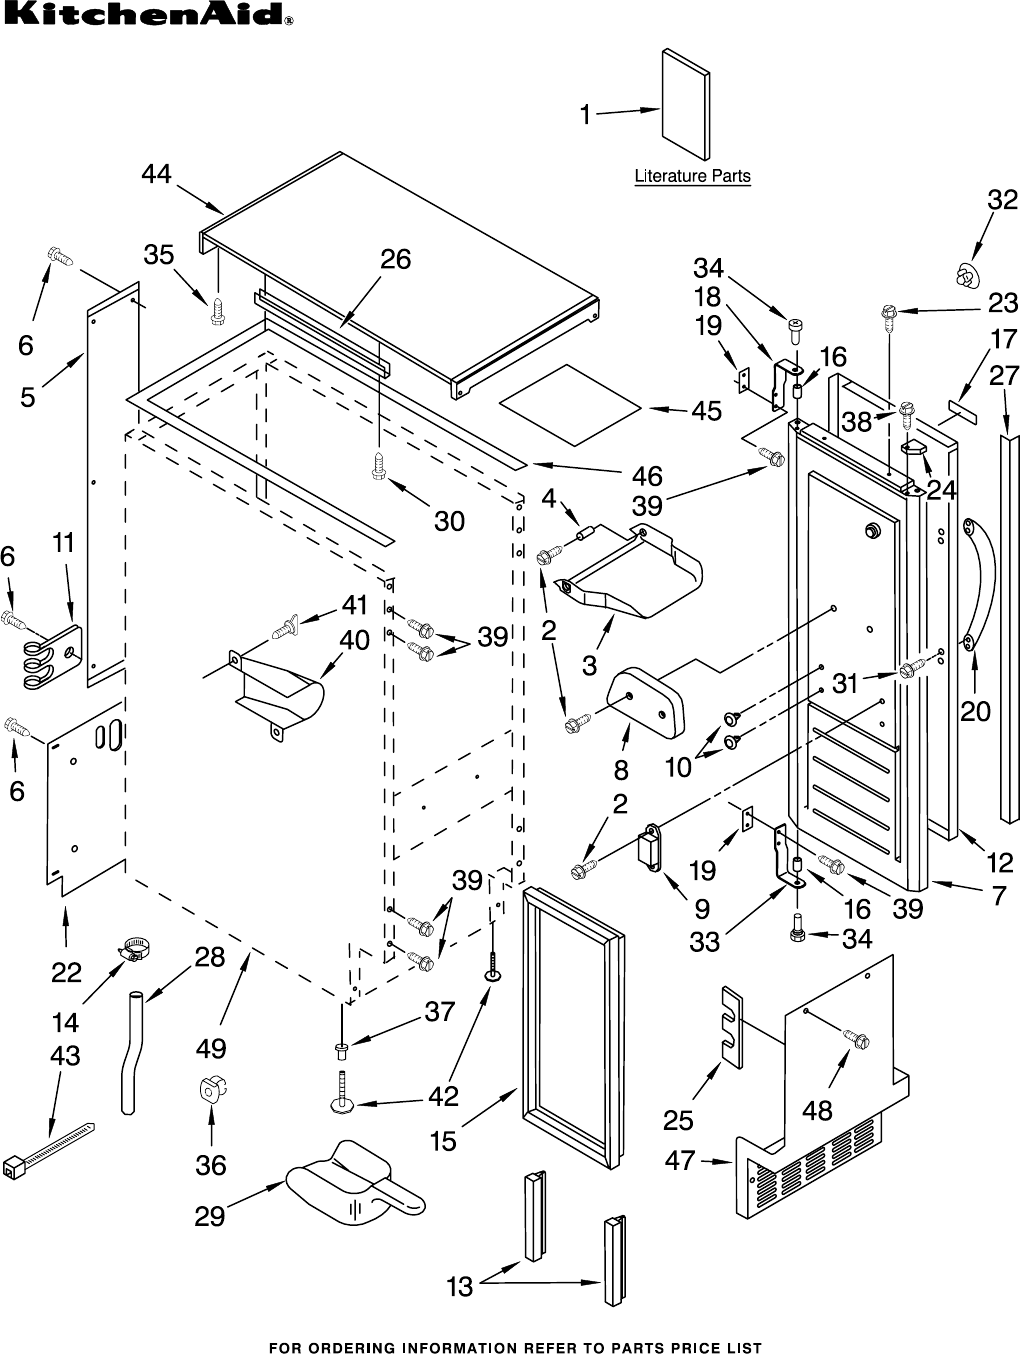 ... Wire Diagram Kitchenaid Kitchenaid Ice Maker Kuic15nrts2 User Guide Manualsonline Com Whirlpool Ice Maker Parts Cabinet Liner And Door ...